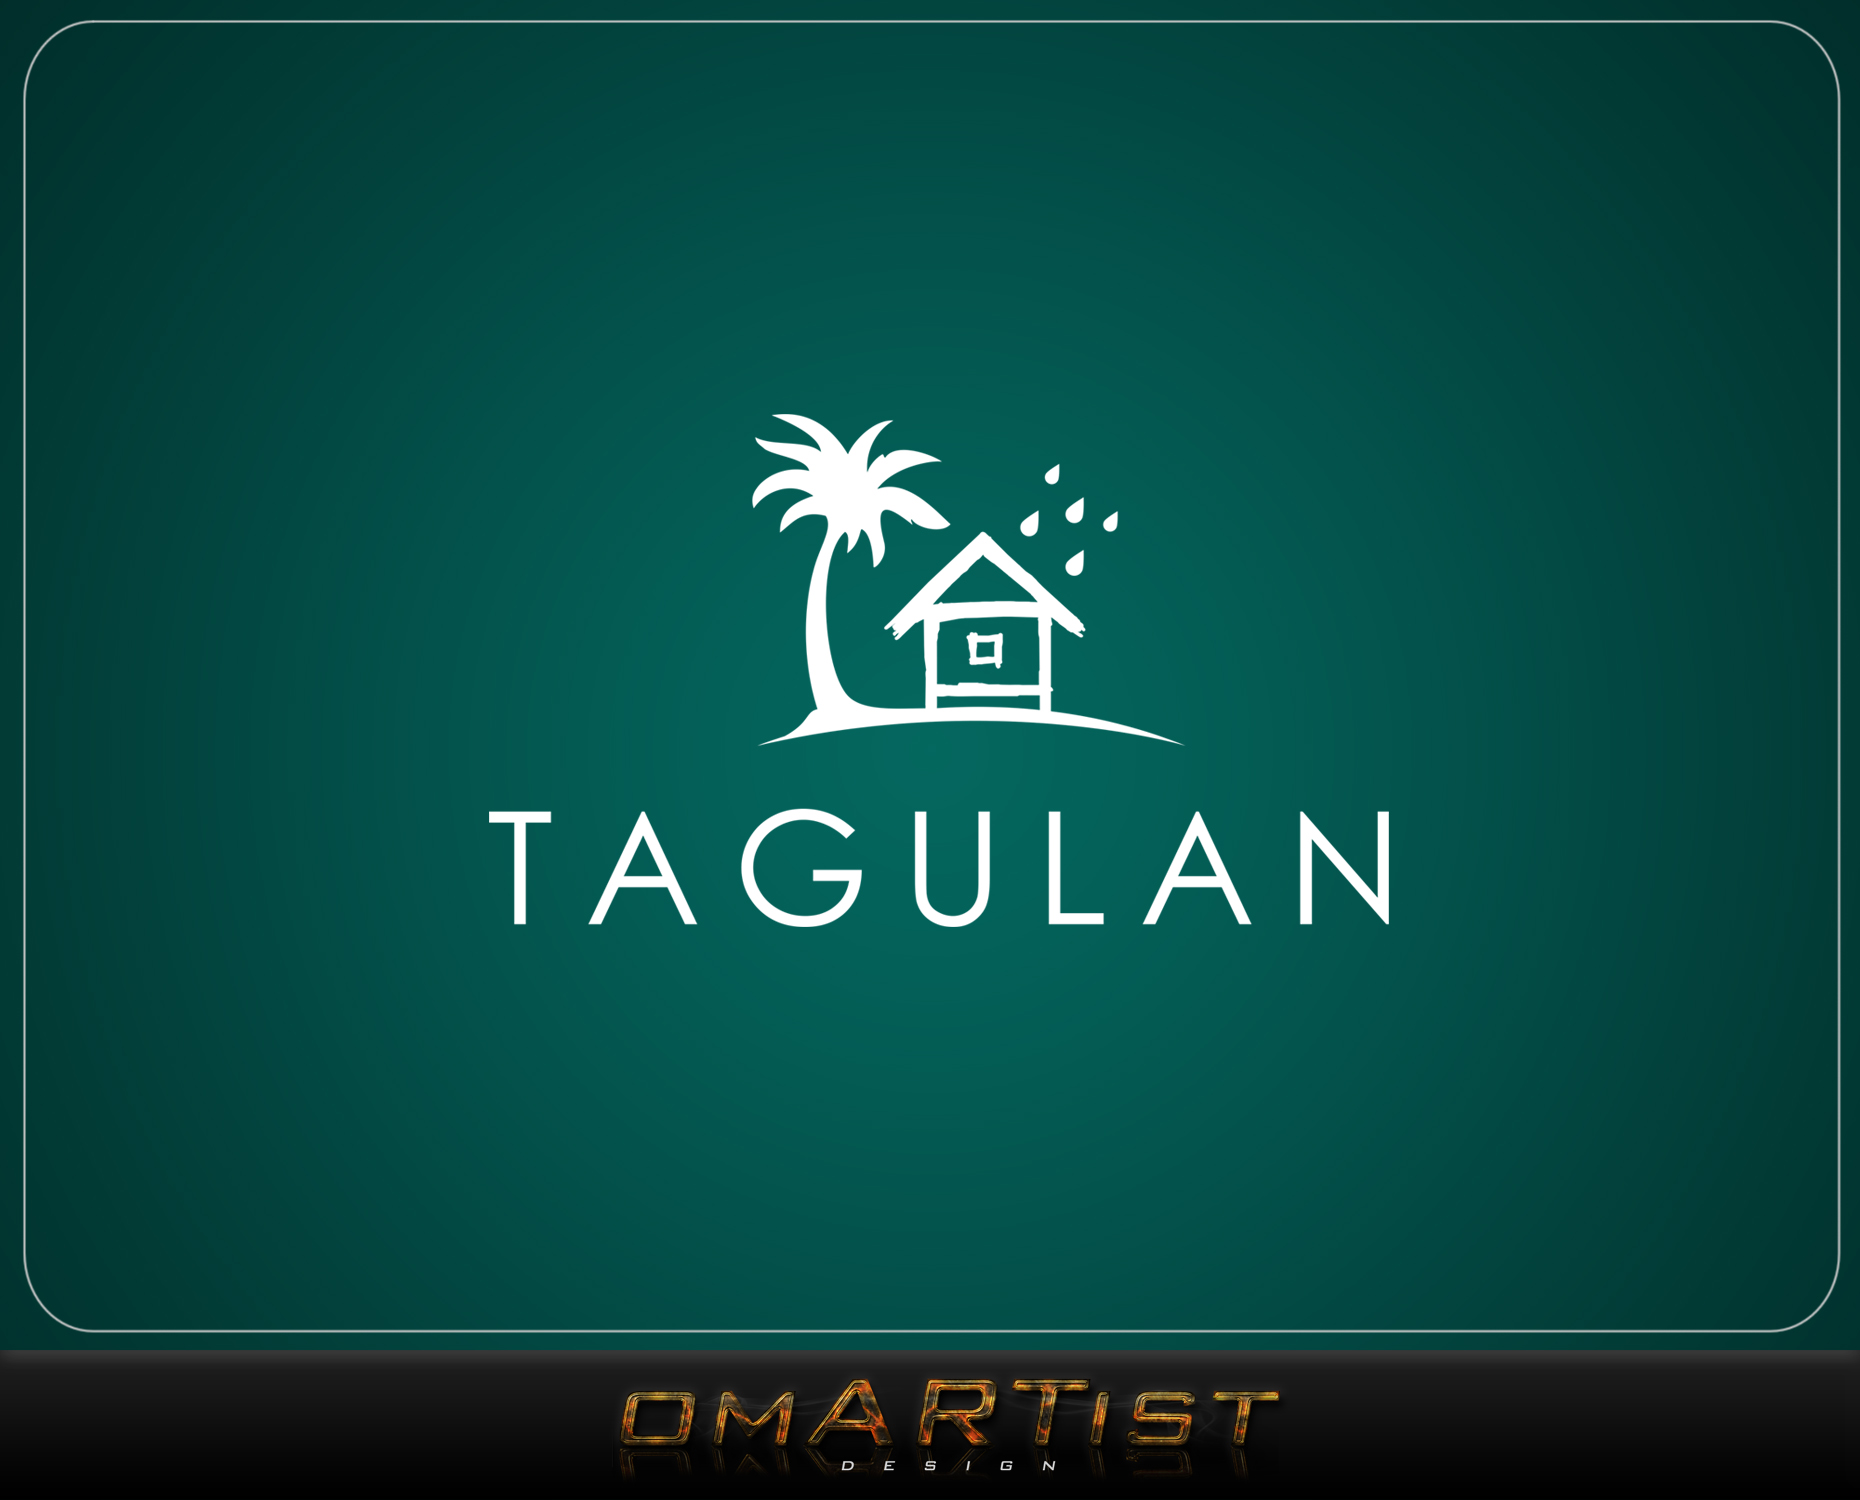 Logo Design by omARTist - Entry No. 82 in the Logo Design Contest Unique Logo Design Wanted for Tagulan.